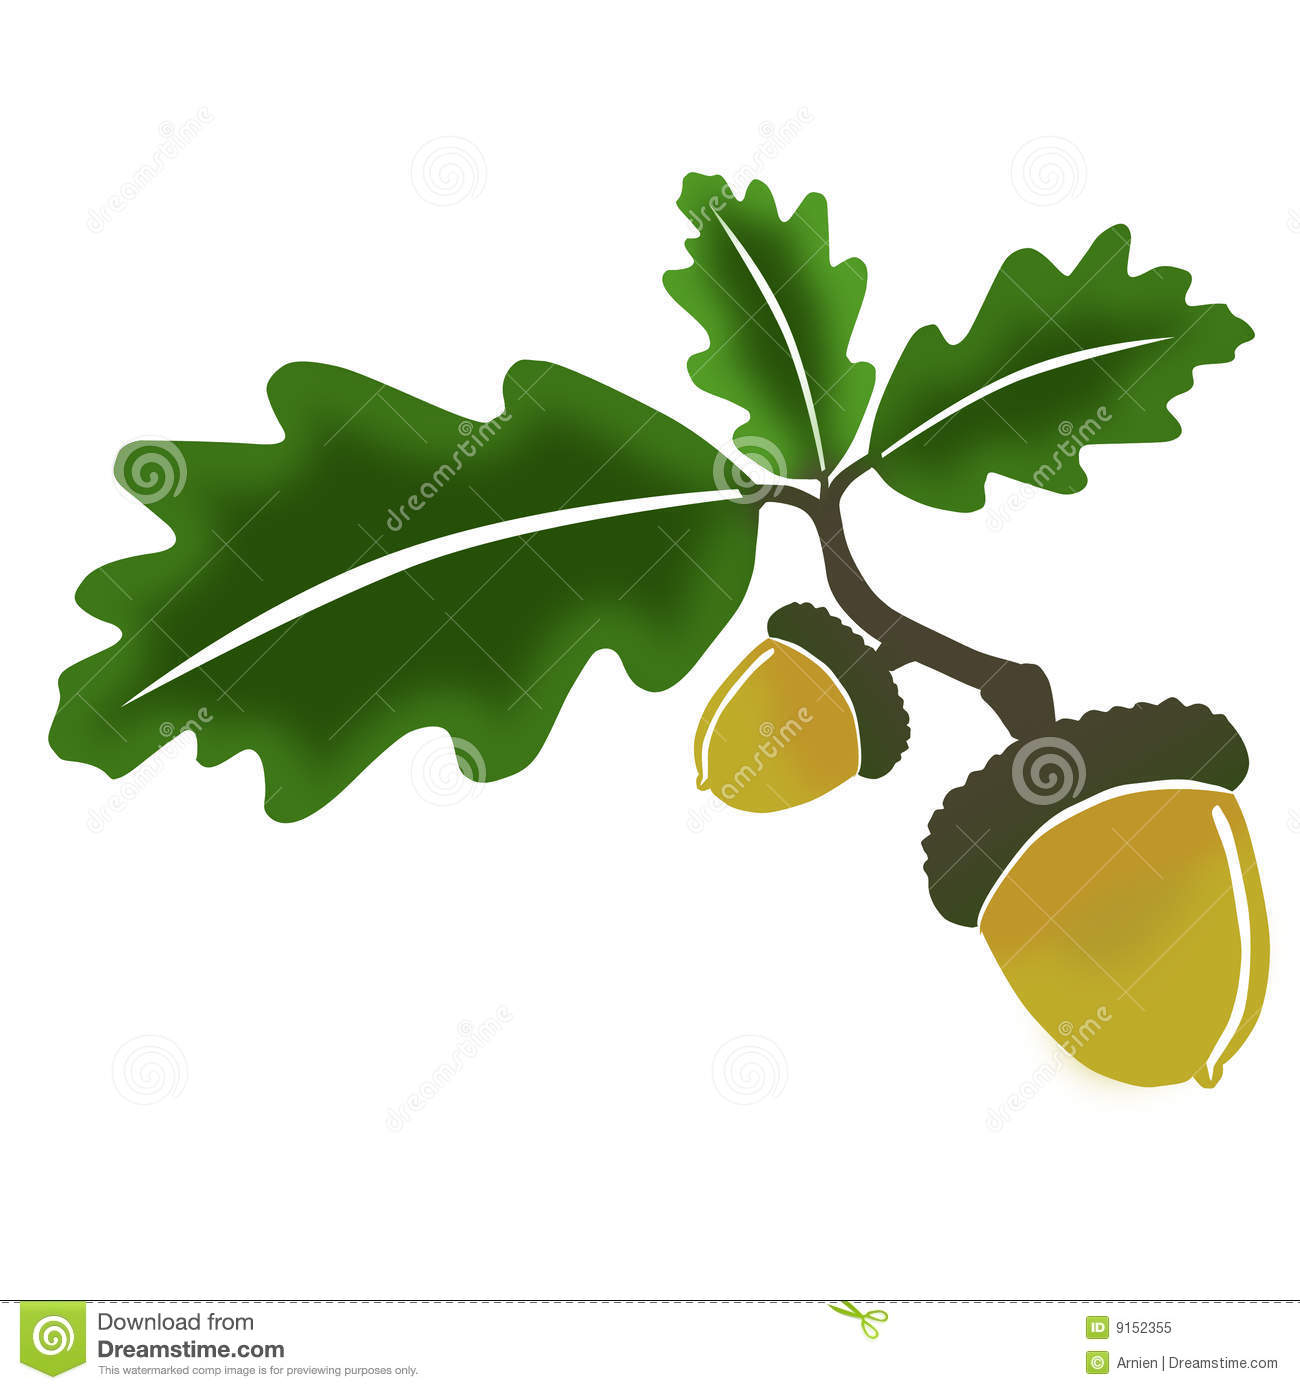 Acorn and oak leaf clipart picture transparent library Oak, leaves and acorn | Clipart Panda - Free Clipart Images picture transparent library